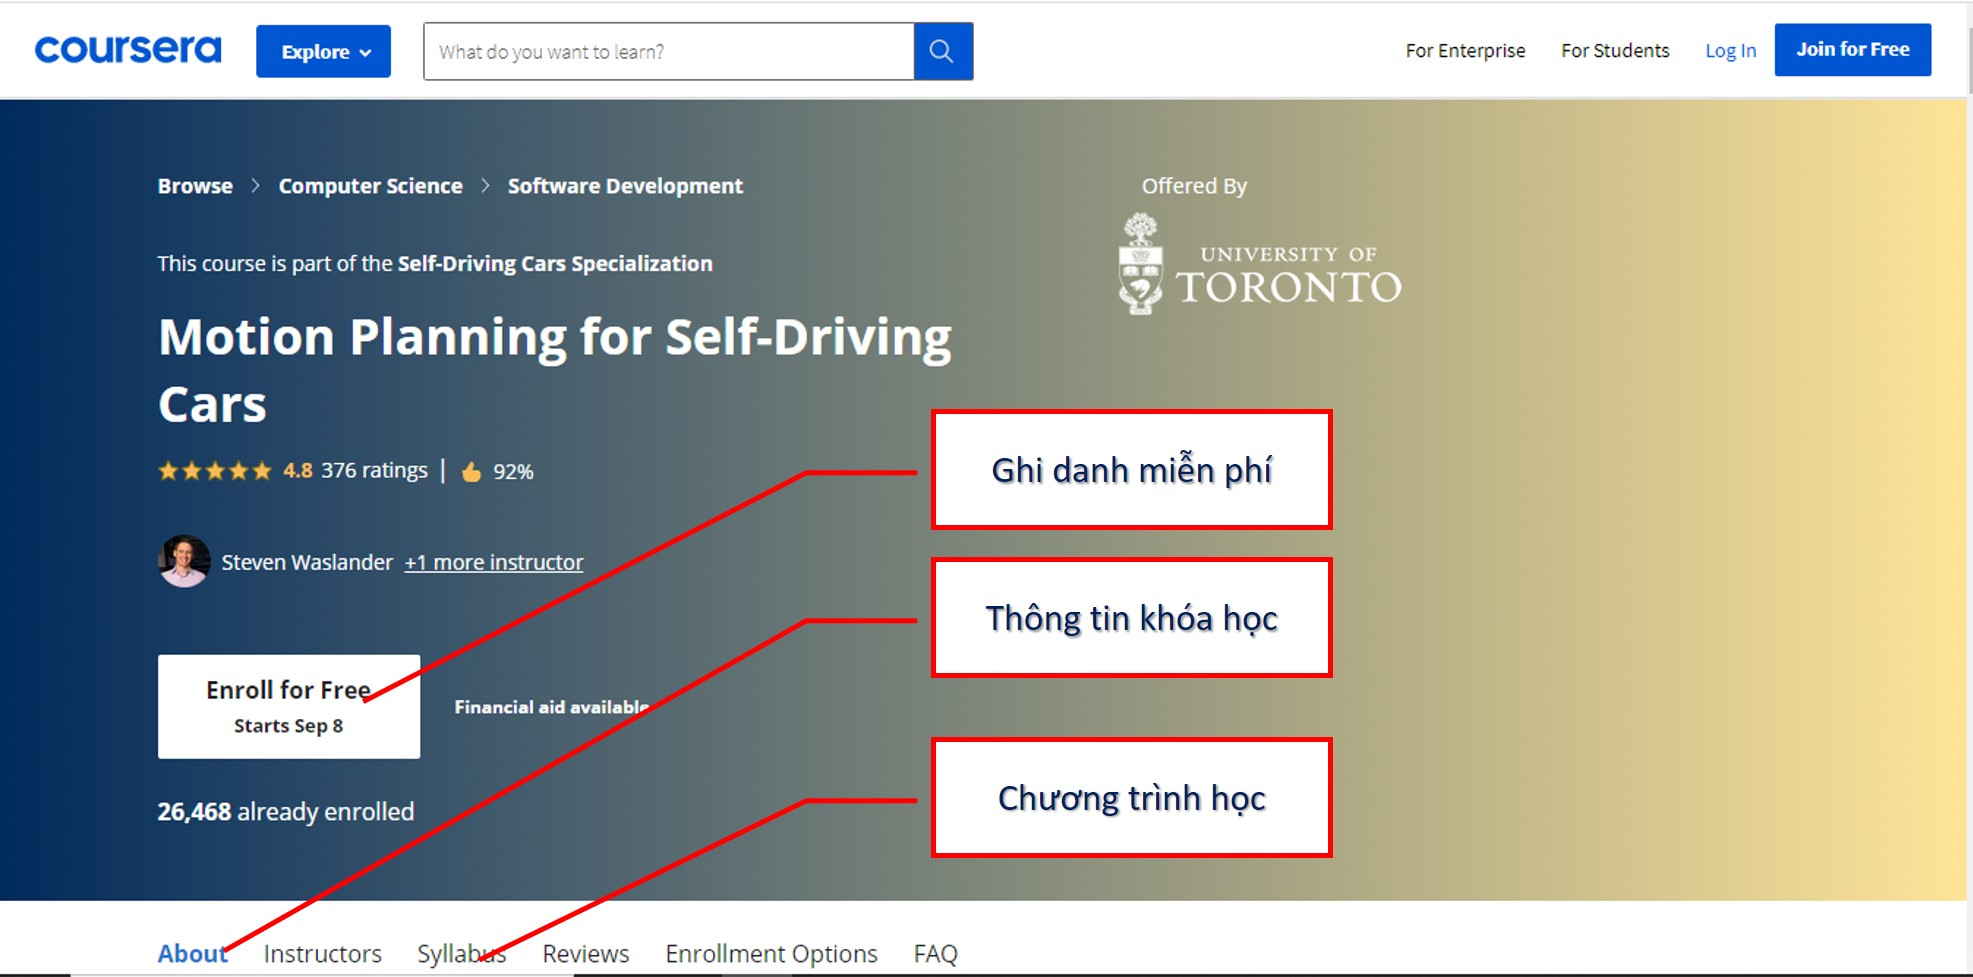 Motion Planning for Self-Driving Cars